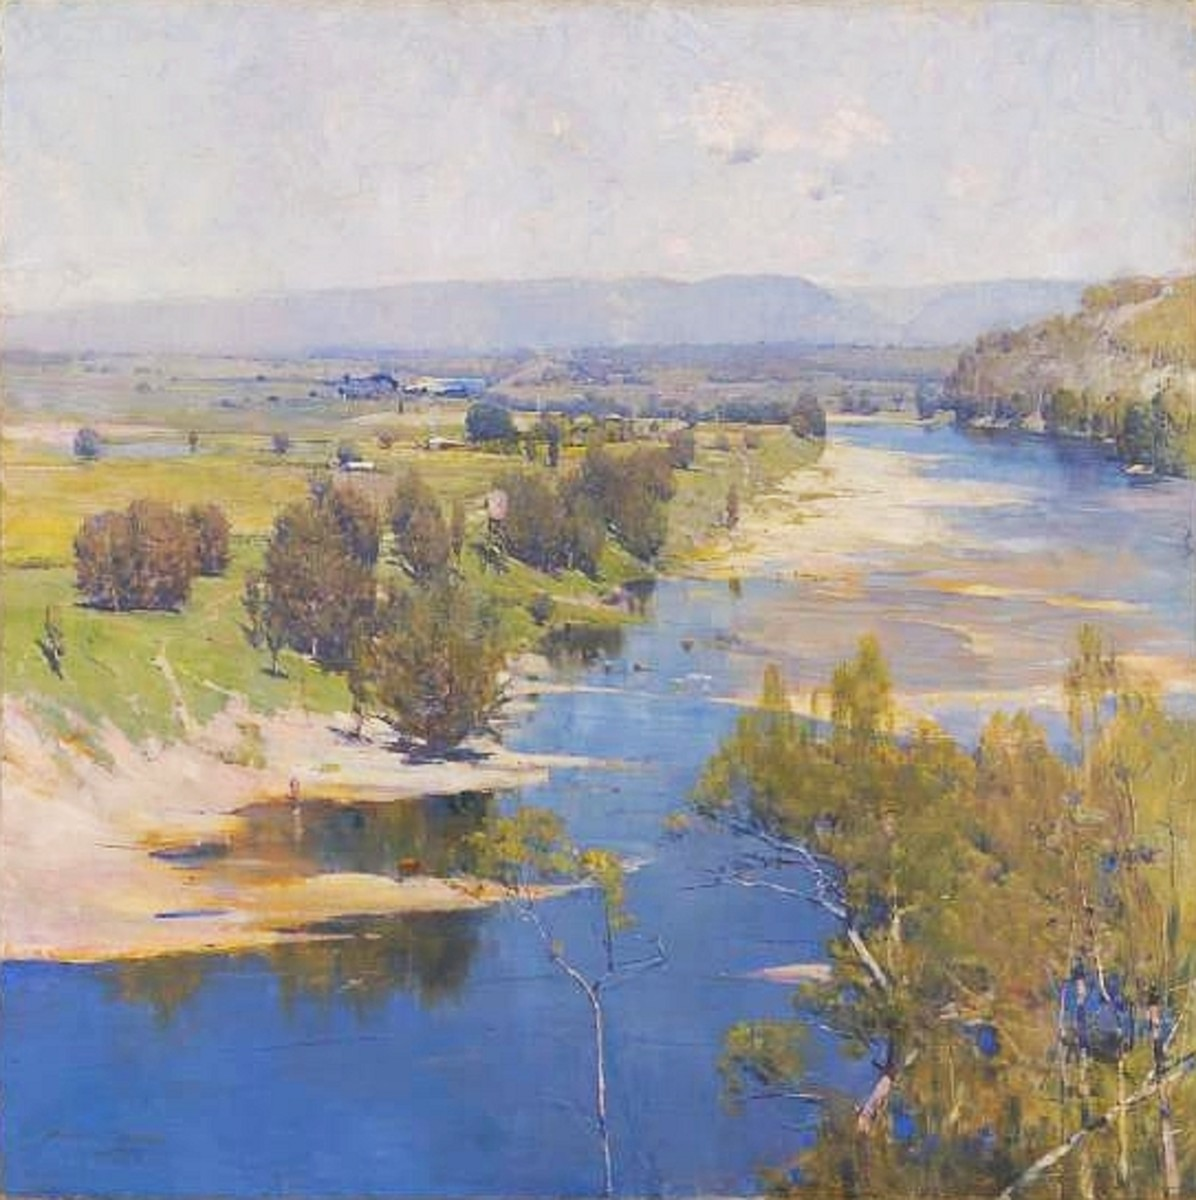 The purple noon's transparent might, painting, oil on canvas, 123.0 x 123.0cm by Arthur Streeton